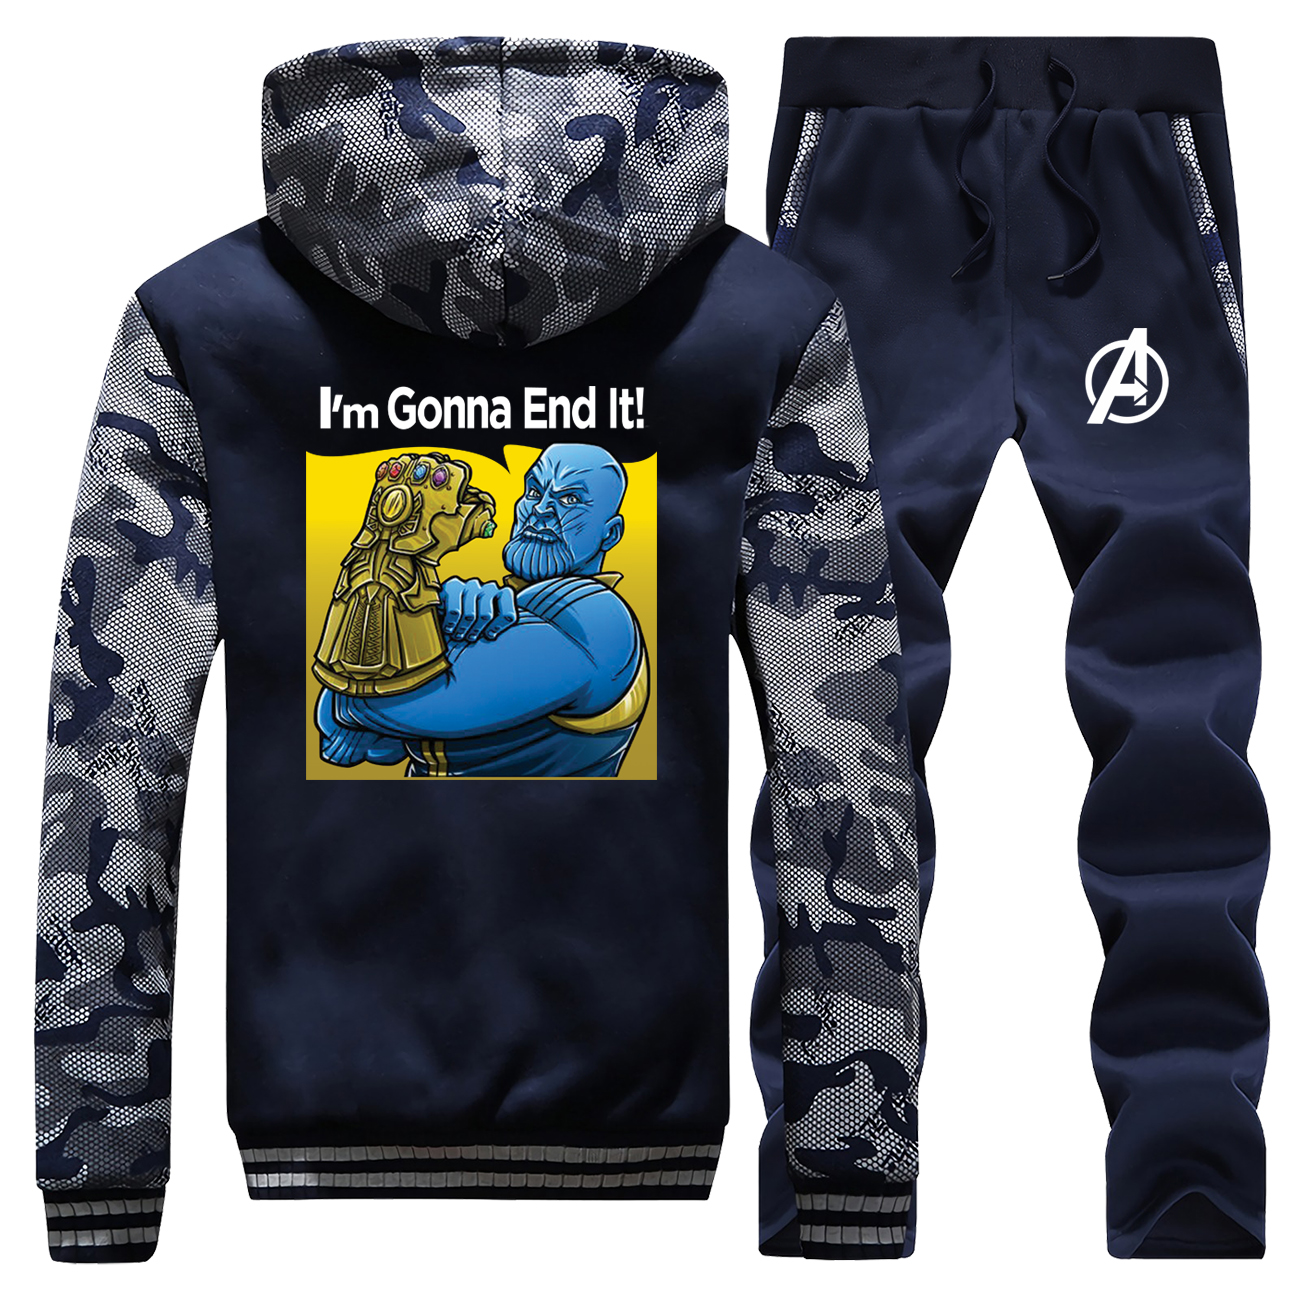 Avengers End Game Men's Sets Infinity Stone Male Camo Set Thanos I'm Gonna End It Thick  Hoodies 2019 Winter Warm Fleece Jackets